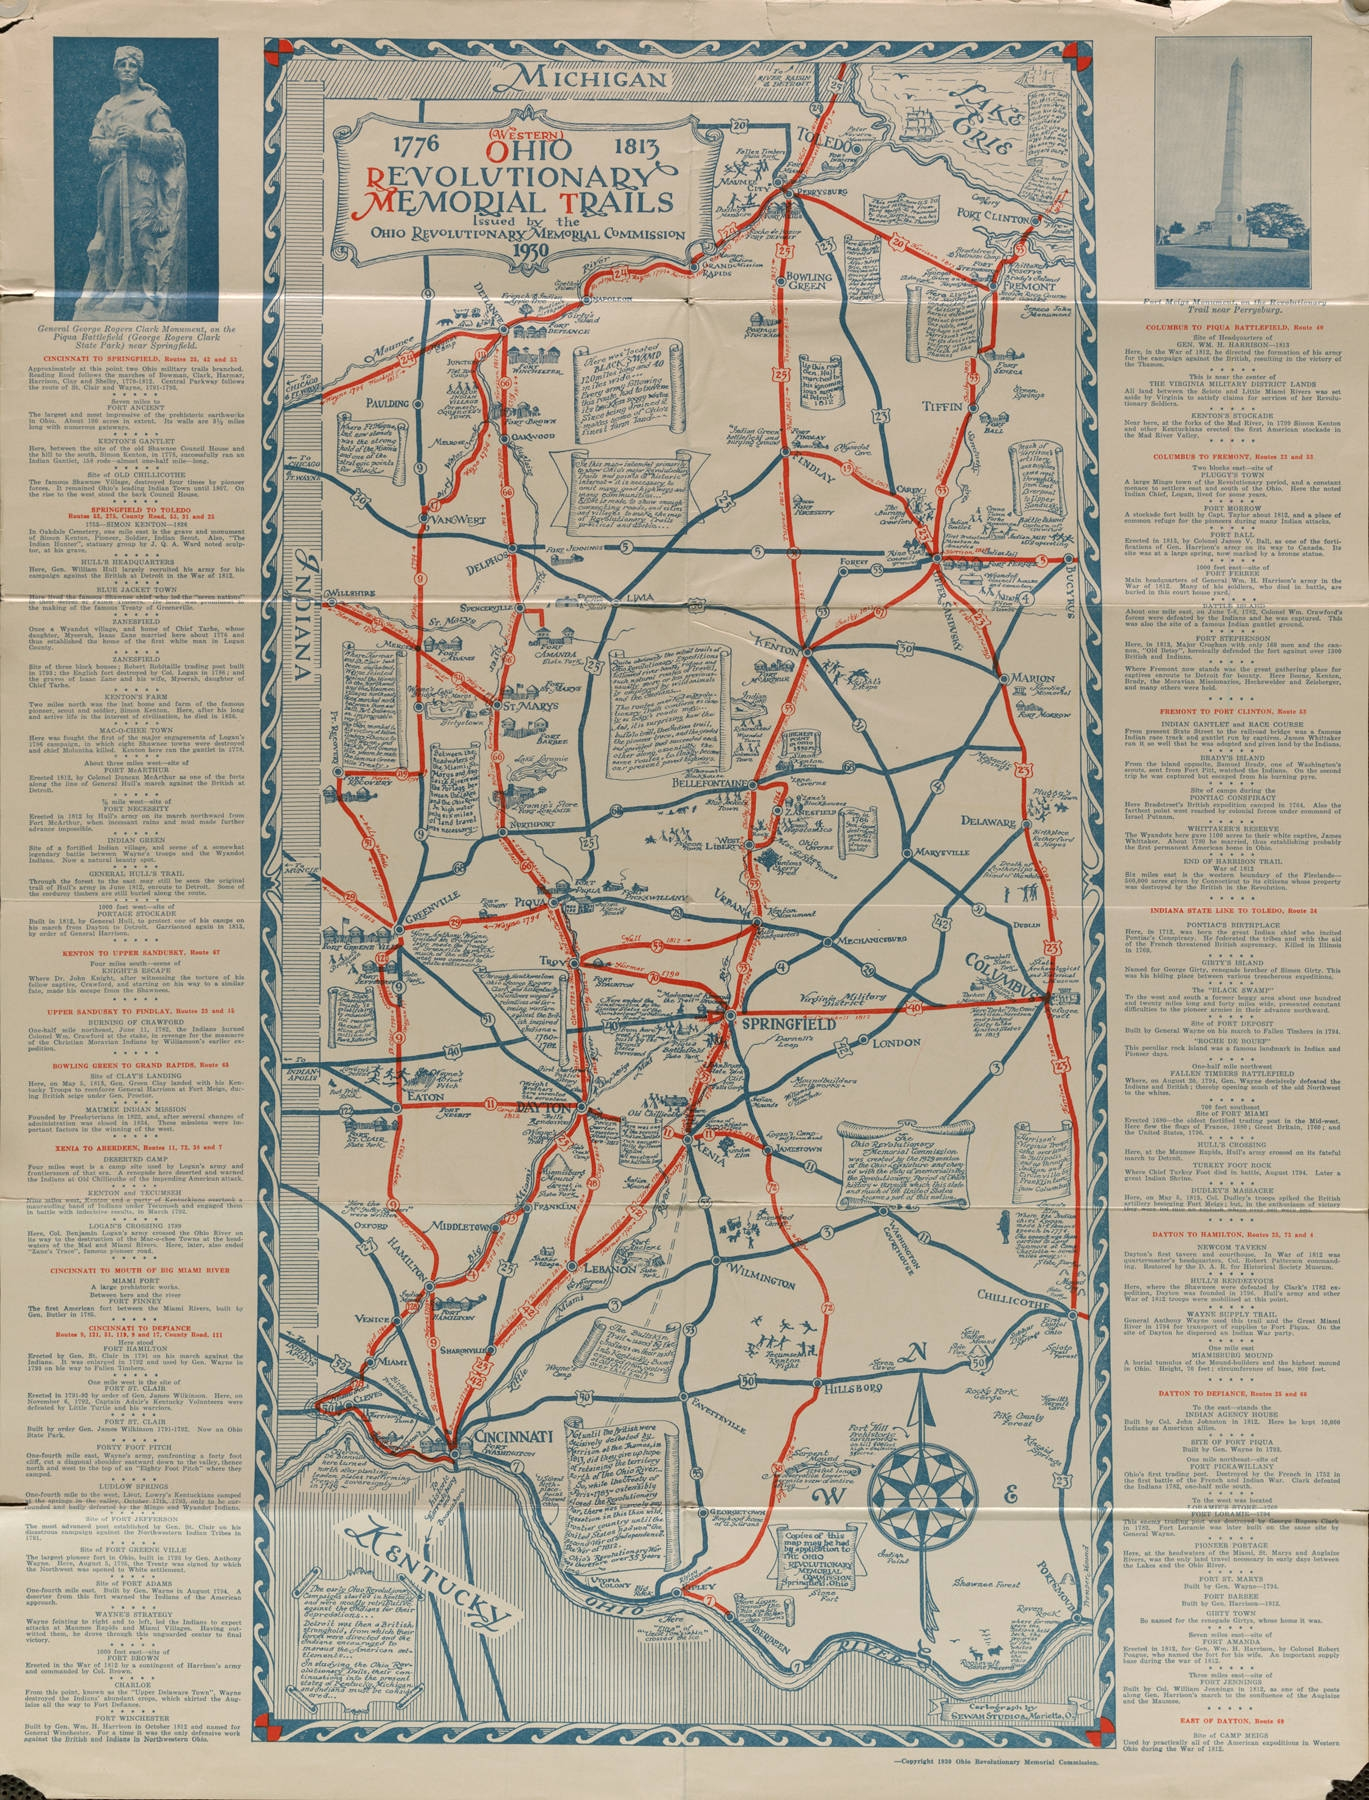 Ohio Revolutionary Memorial Trail Map